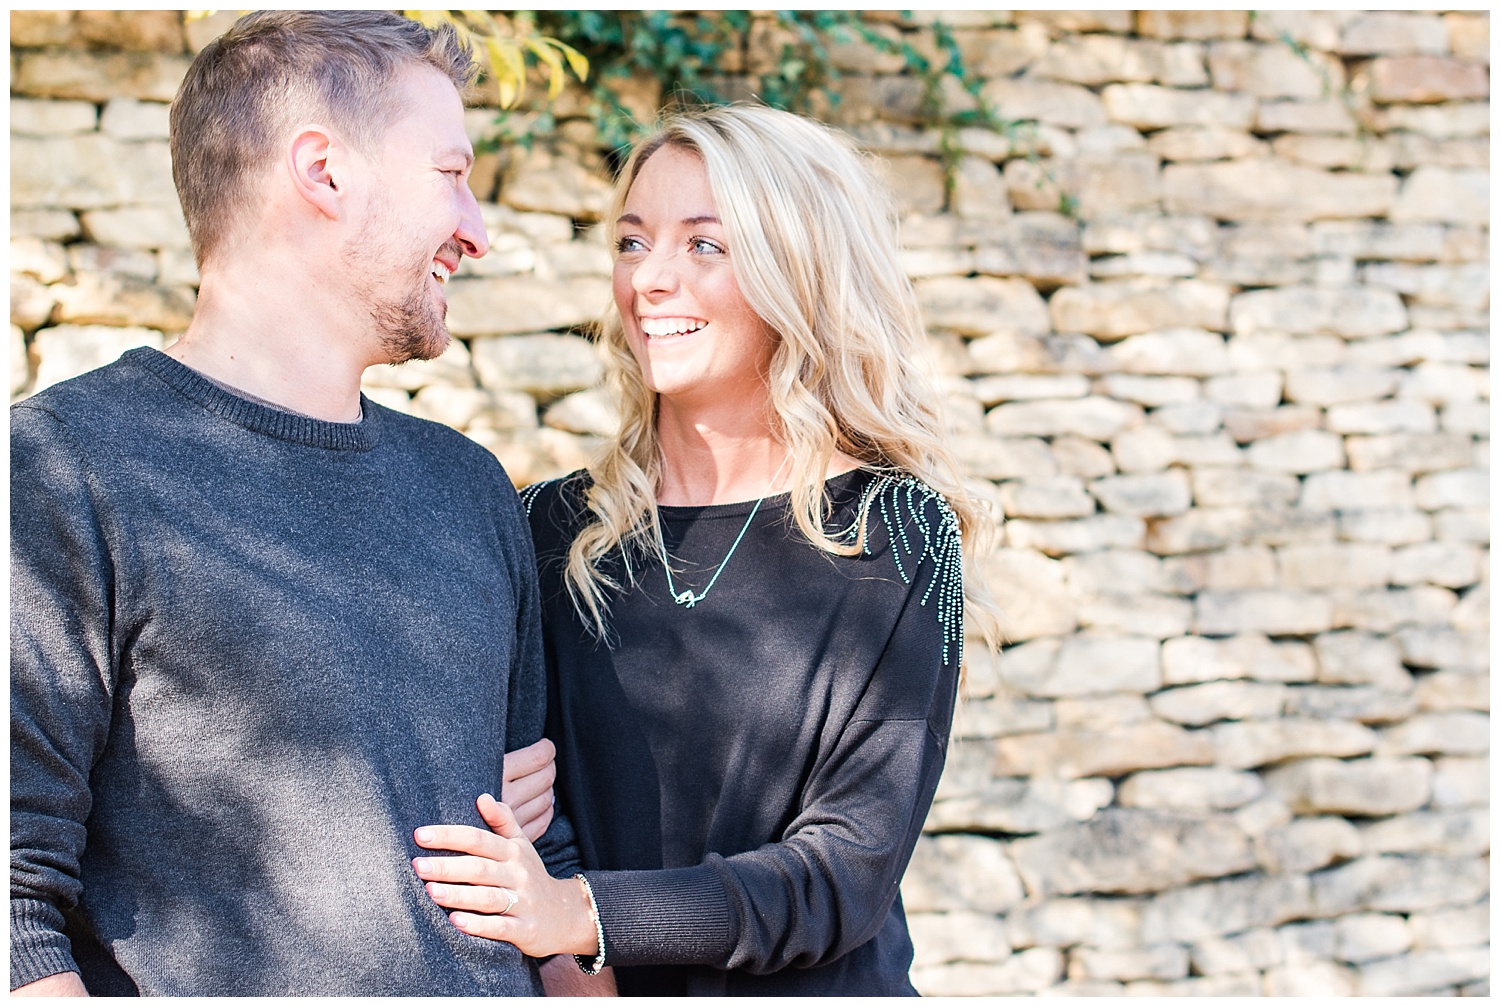 Liz_Toms_Photography_Lifestyle_and_Natural_Light_Photographer_Rhos_on_Sea_Colwyn_Bay_Llandudno_Wirral_Cotswolds_Engagement_Pre-Wedding_The_Apple_Barn